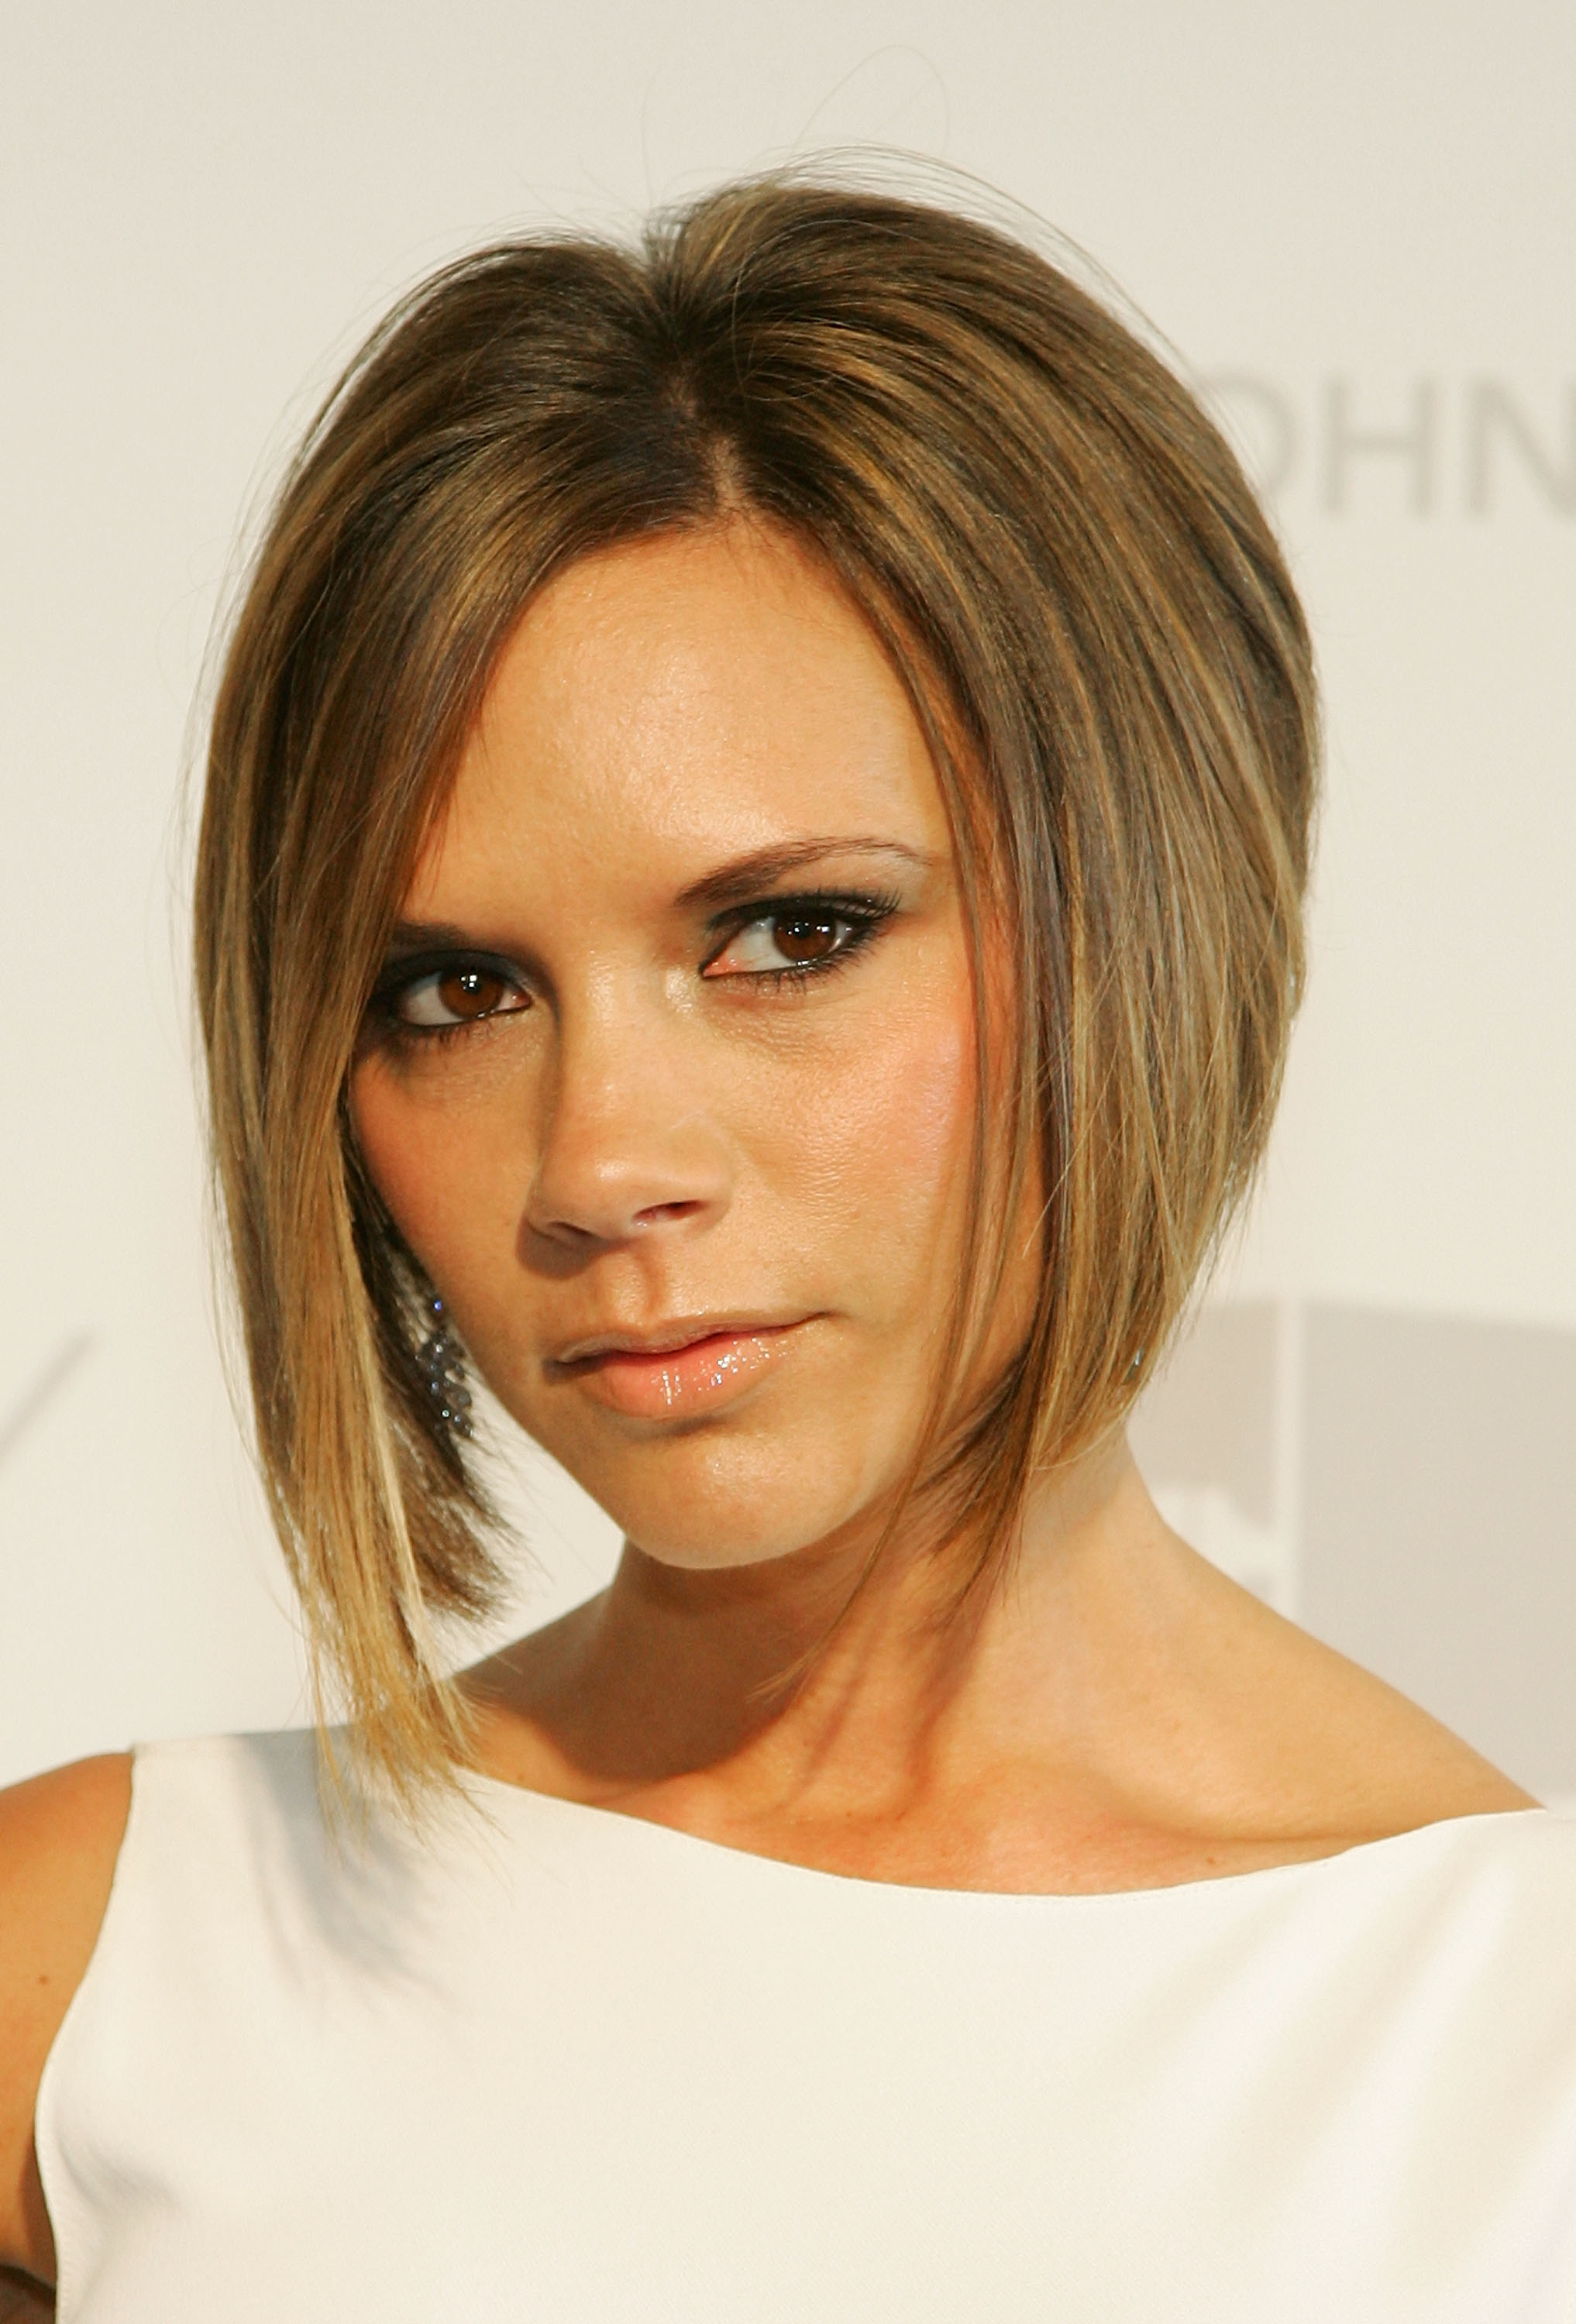 Astounding 27 Hairstyles For Thin Hair Best Haircuts For Thinning Hair Short Hairstyles Gunalazisus